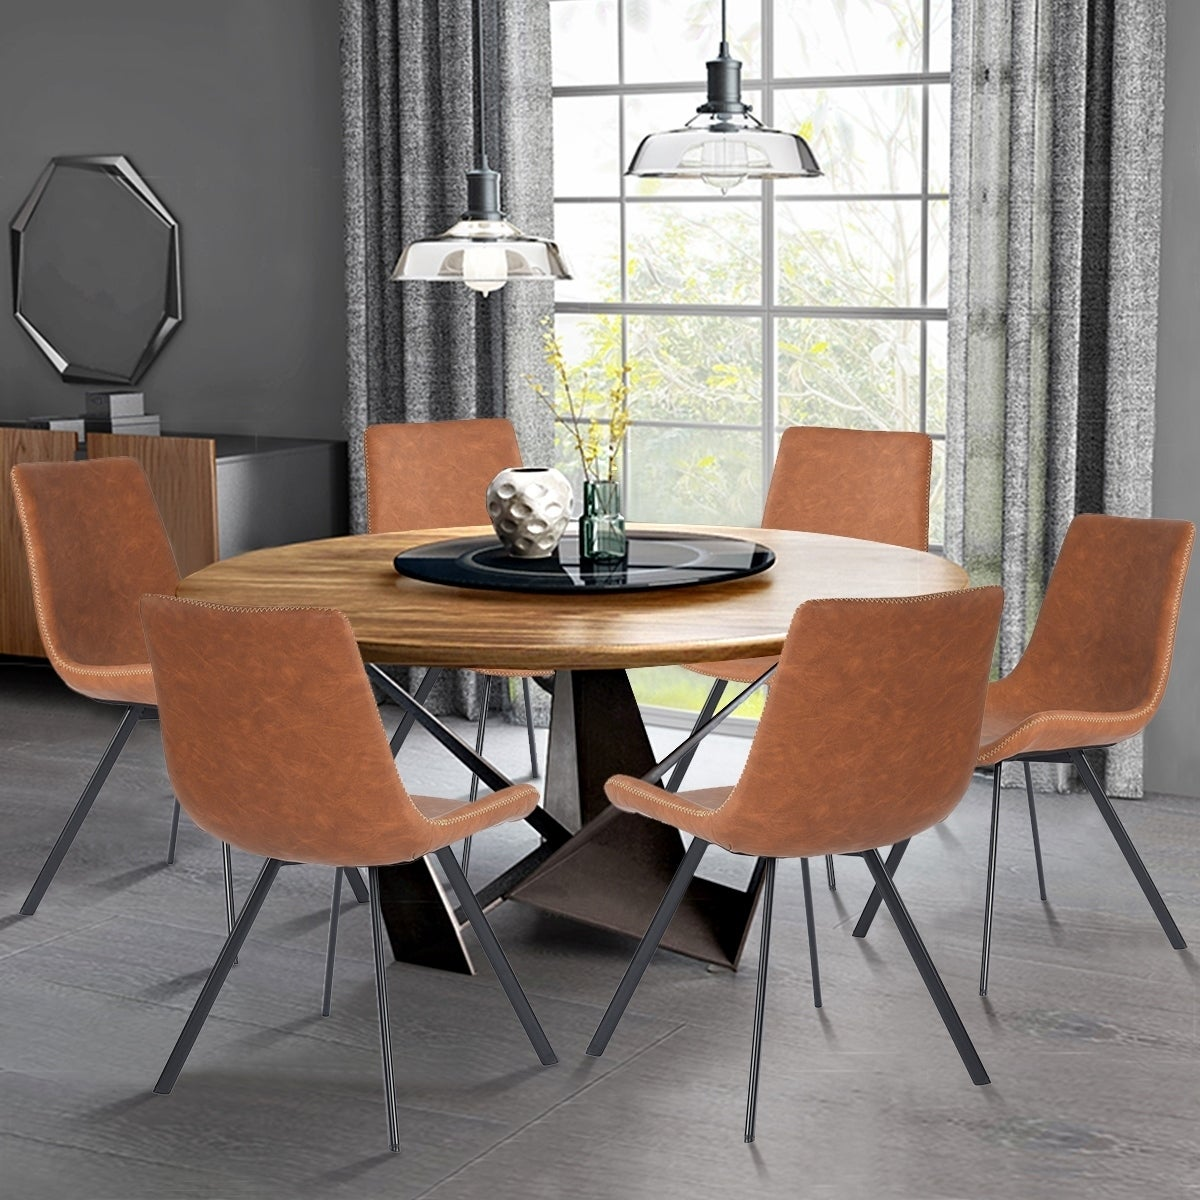 Carson Carrington Ido Ultra-modern Leather Upholstered Dining Chair